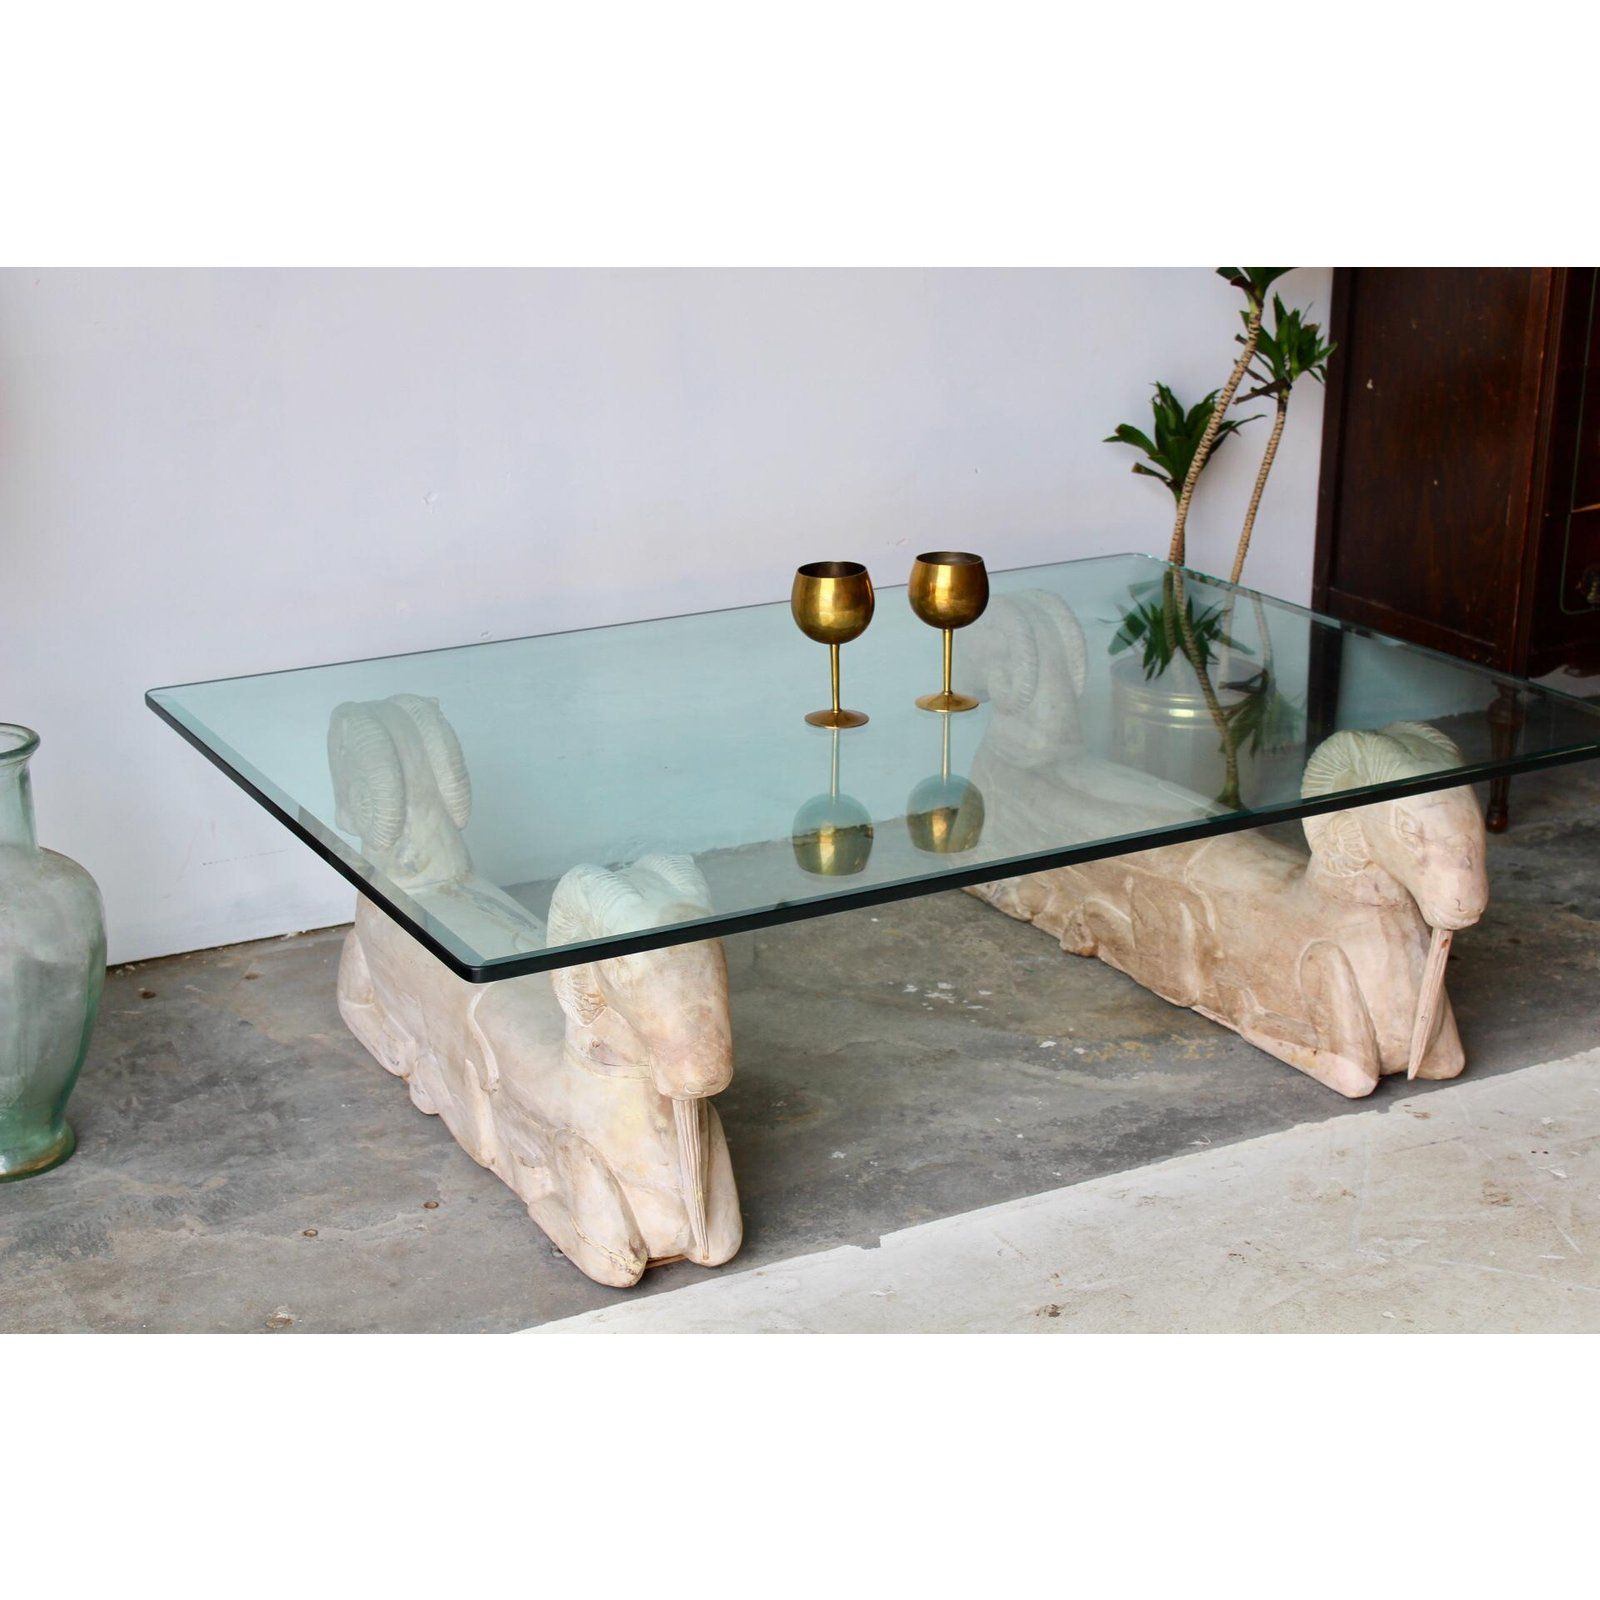 1950s Hollywood Regency Large Carved Wood Rams Glass Top Coffee Table Chairish Coffee Table Coffee Table Wood Coffee Table Rectangle [ 1600 x 1600 Pixel ]